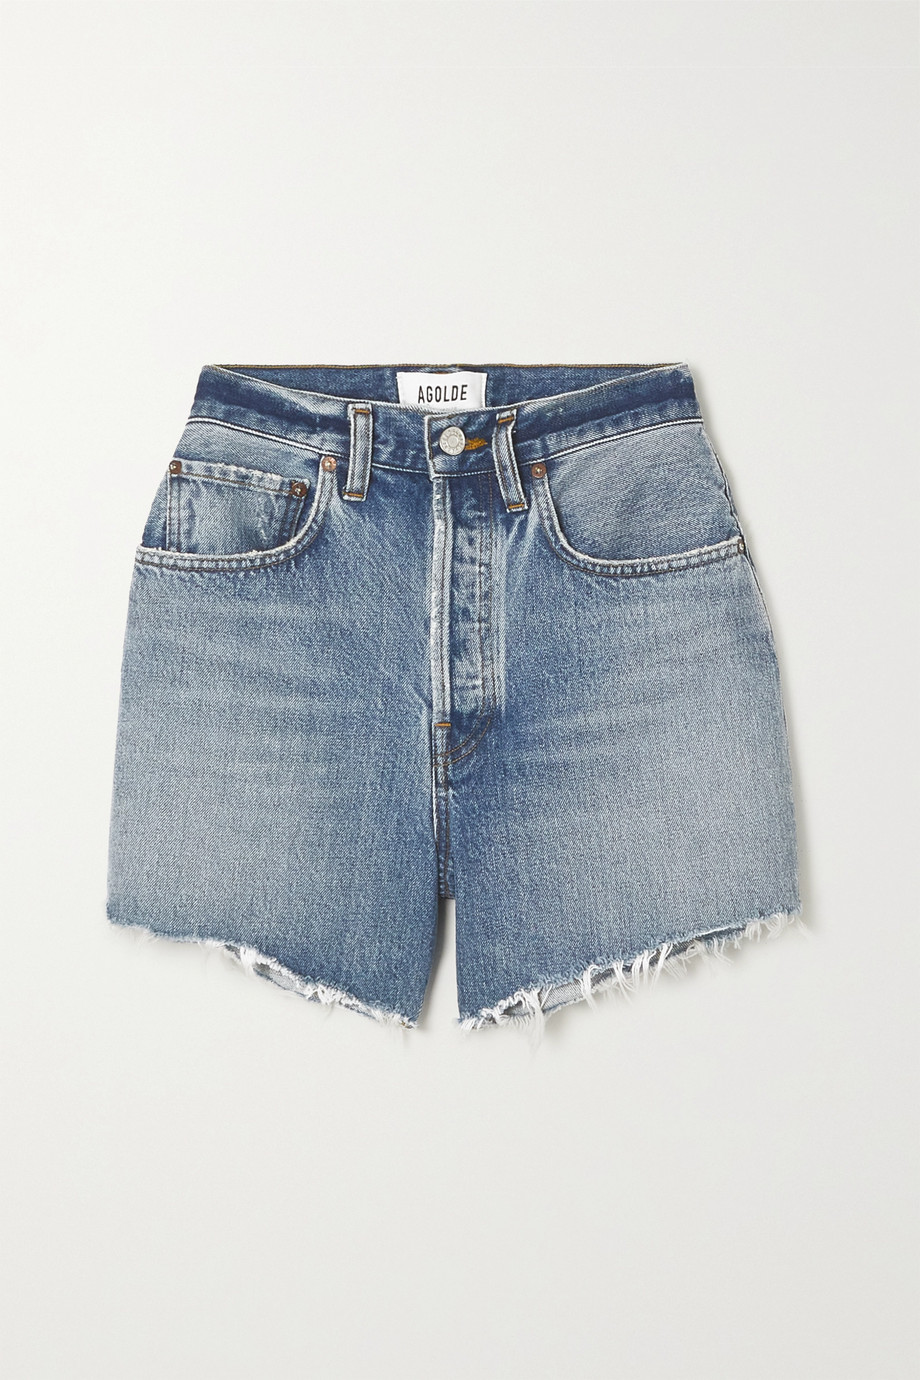 AGOLDE Riley distressed organic denim shorts